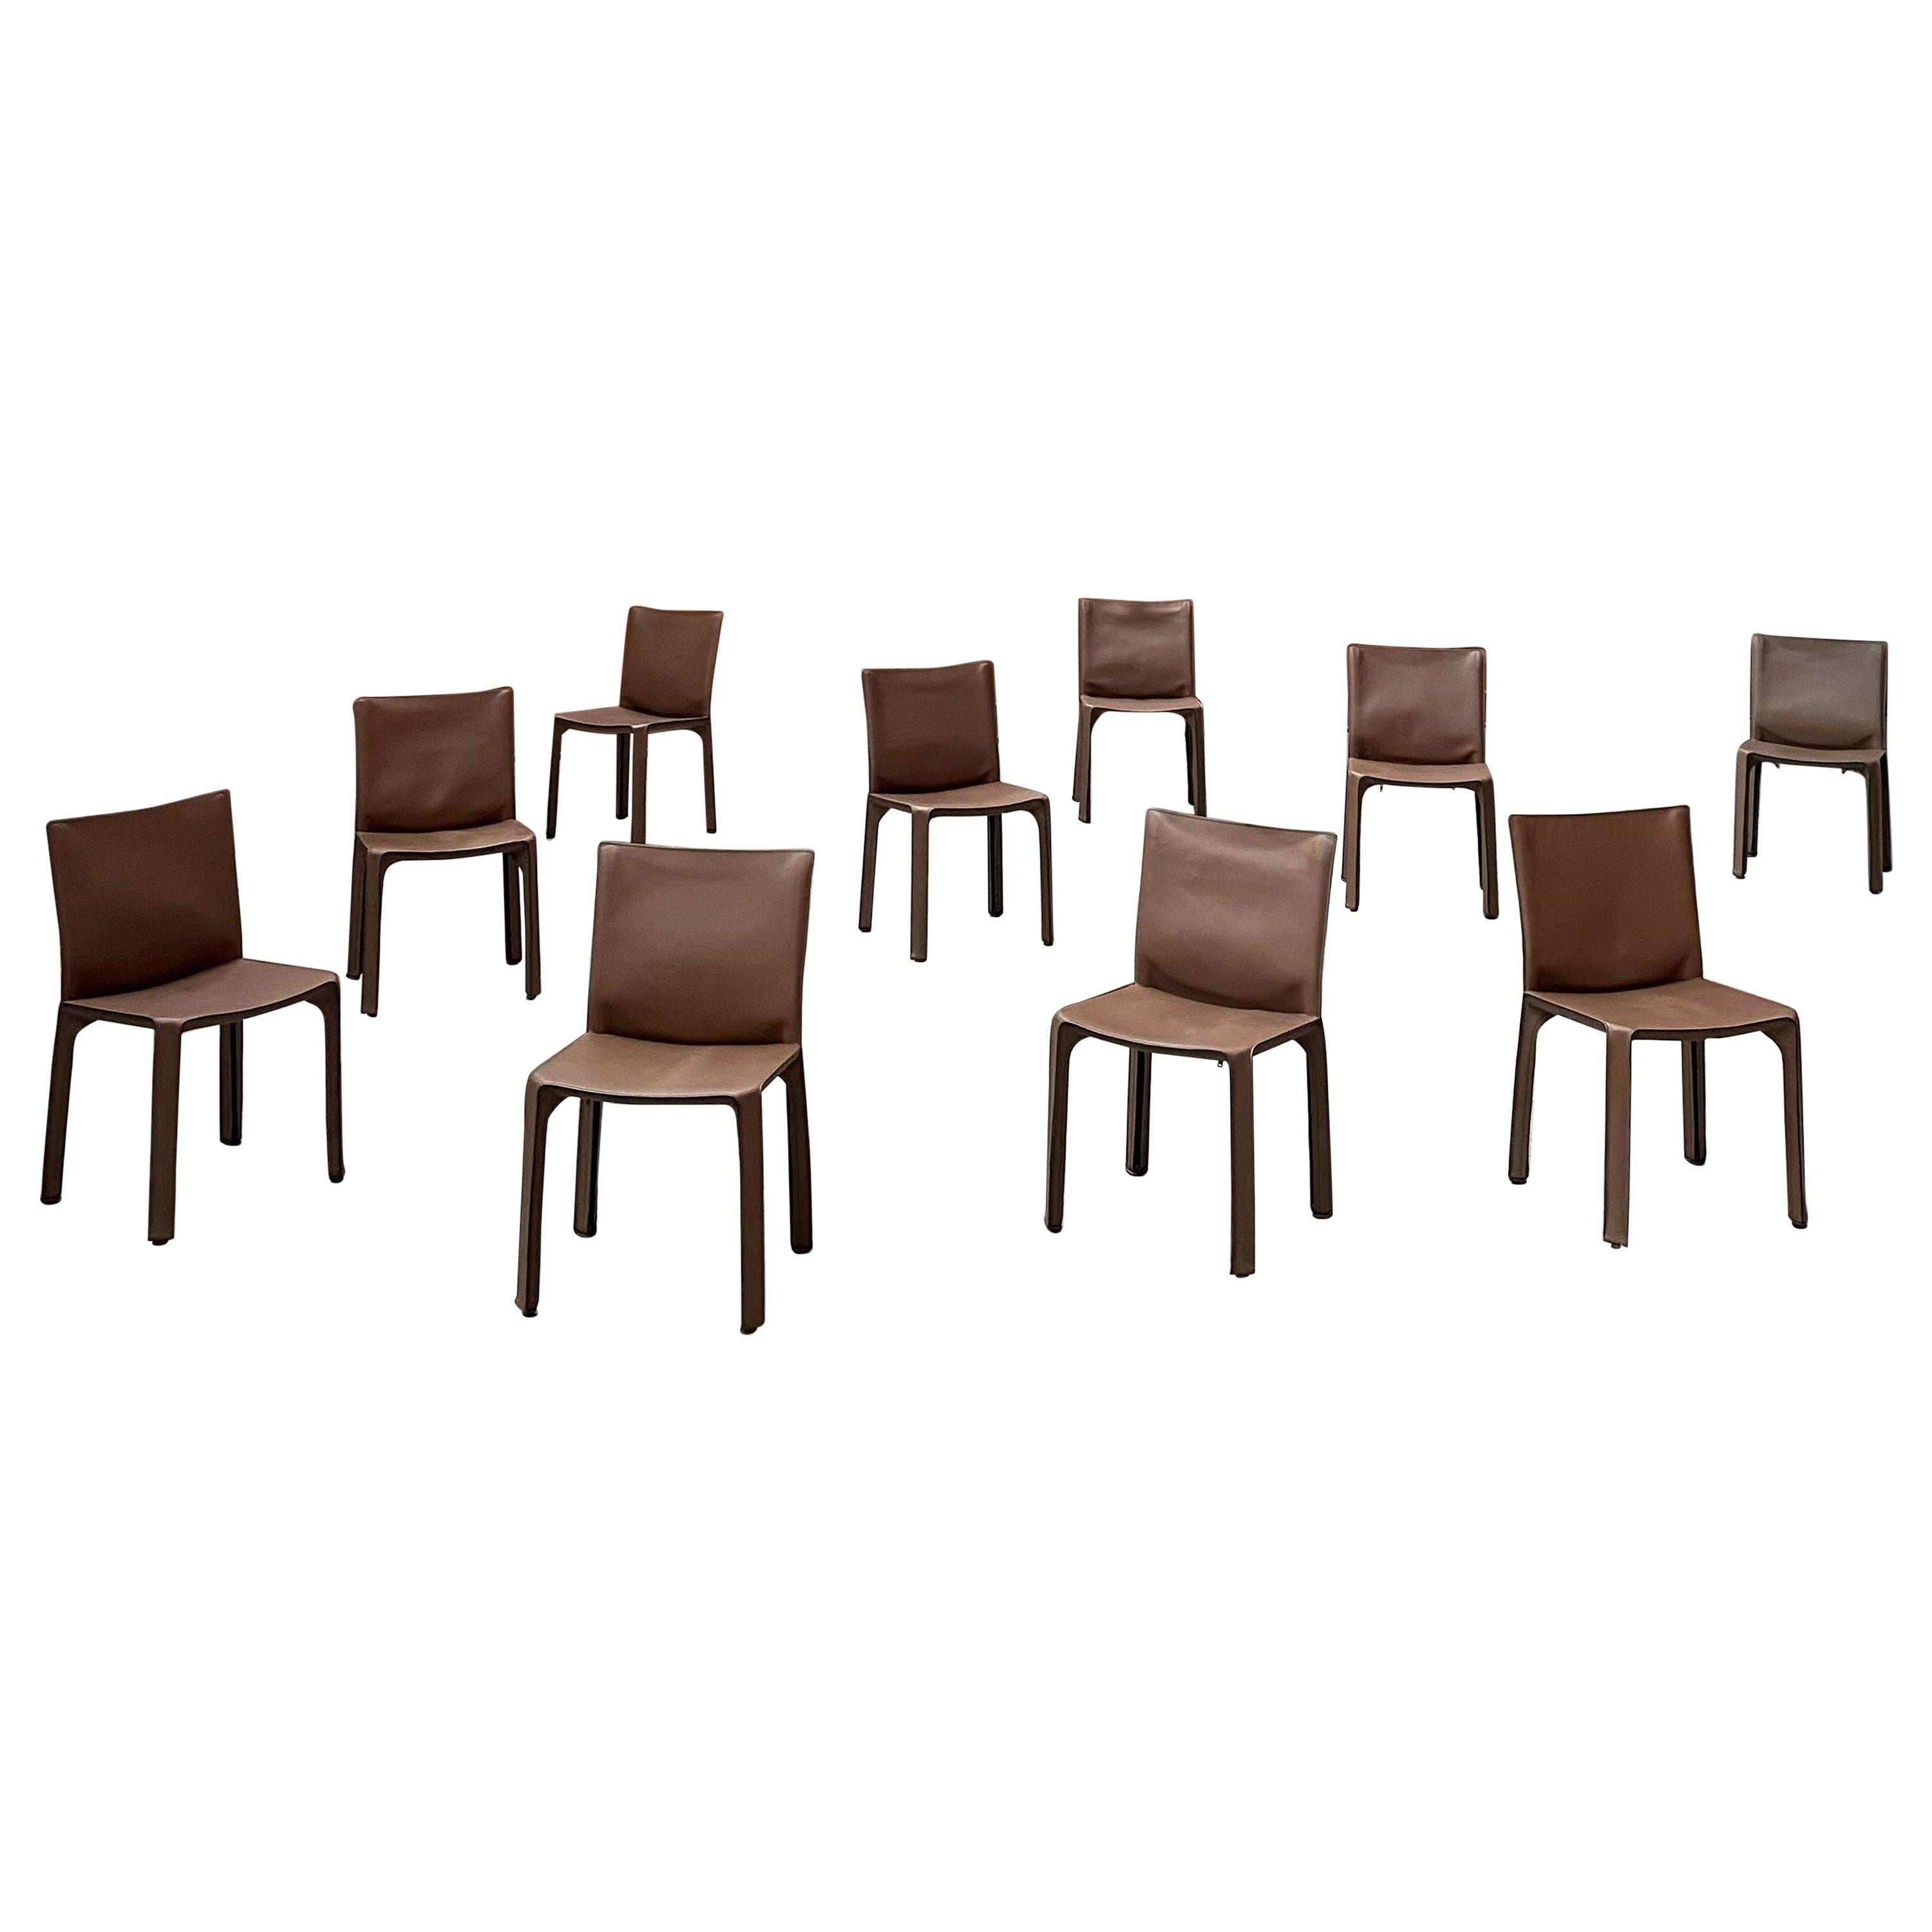 """Mario Bellini 412 """"CAB"""" Dining Chairs for Cassina, 1977, Set of 10"""